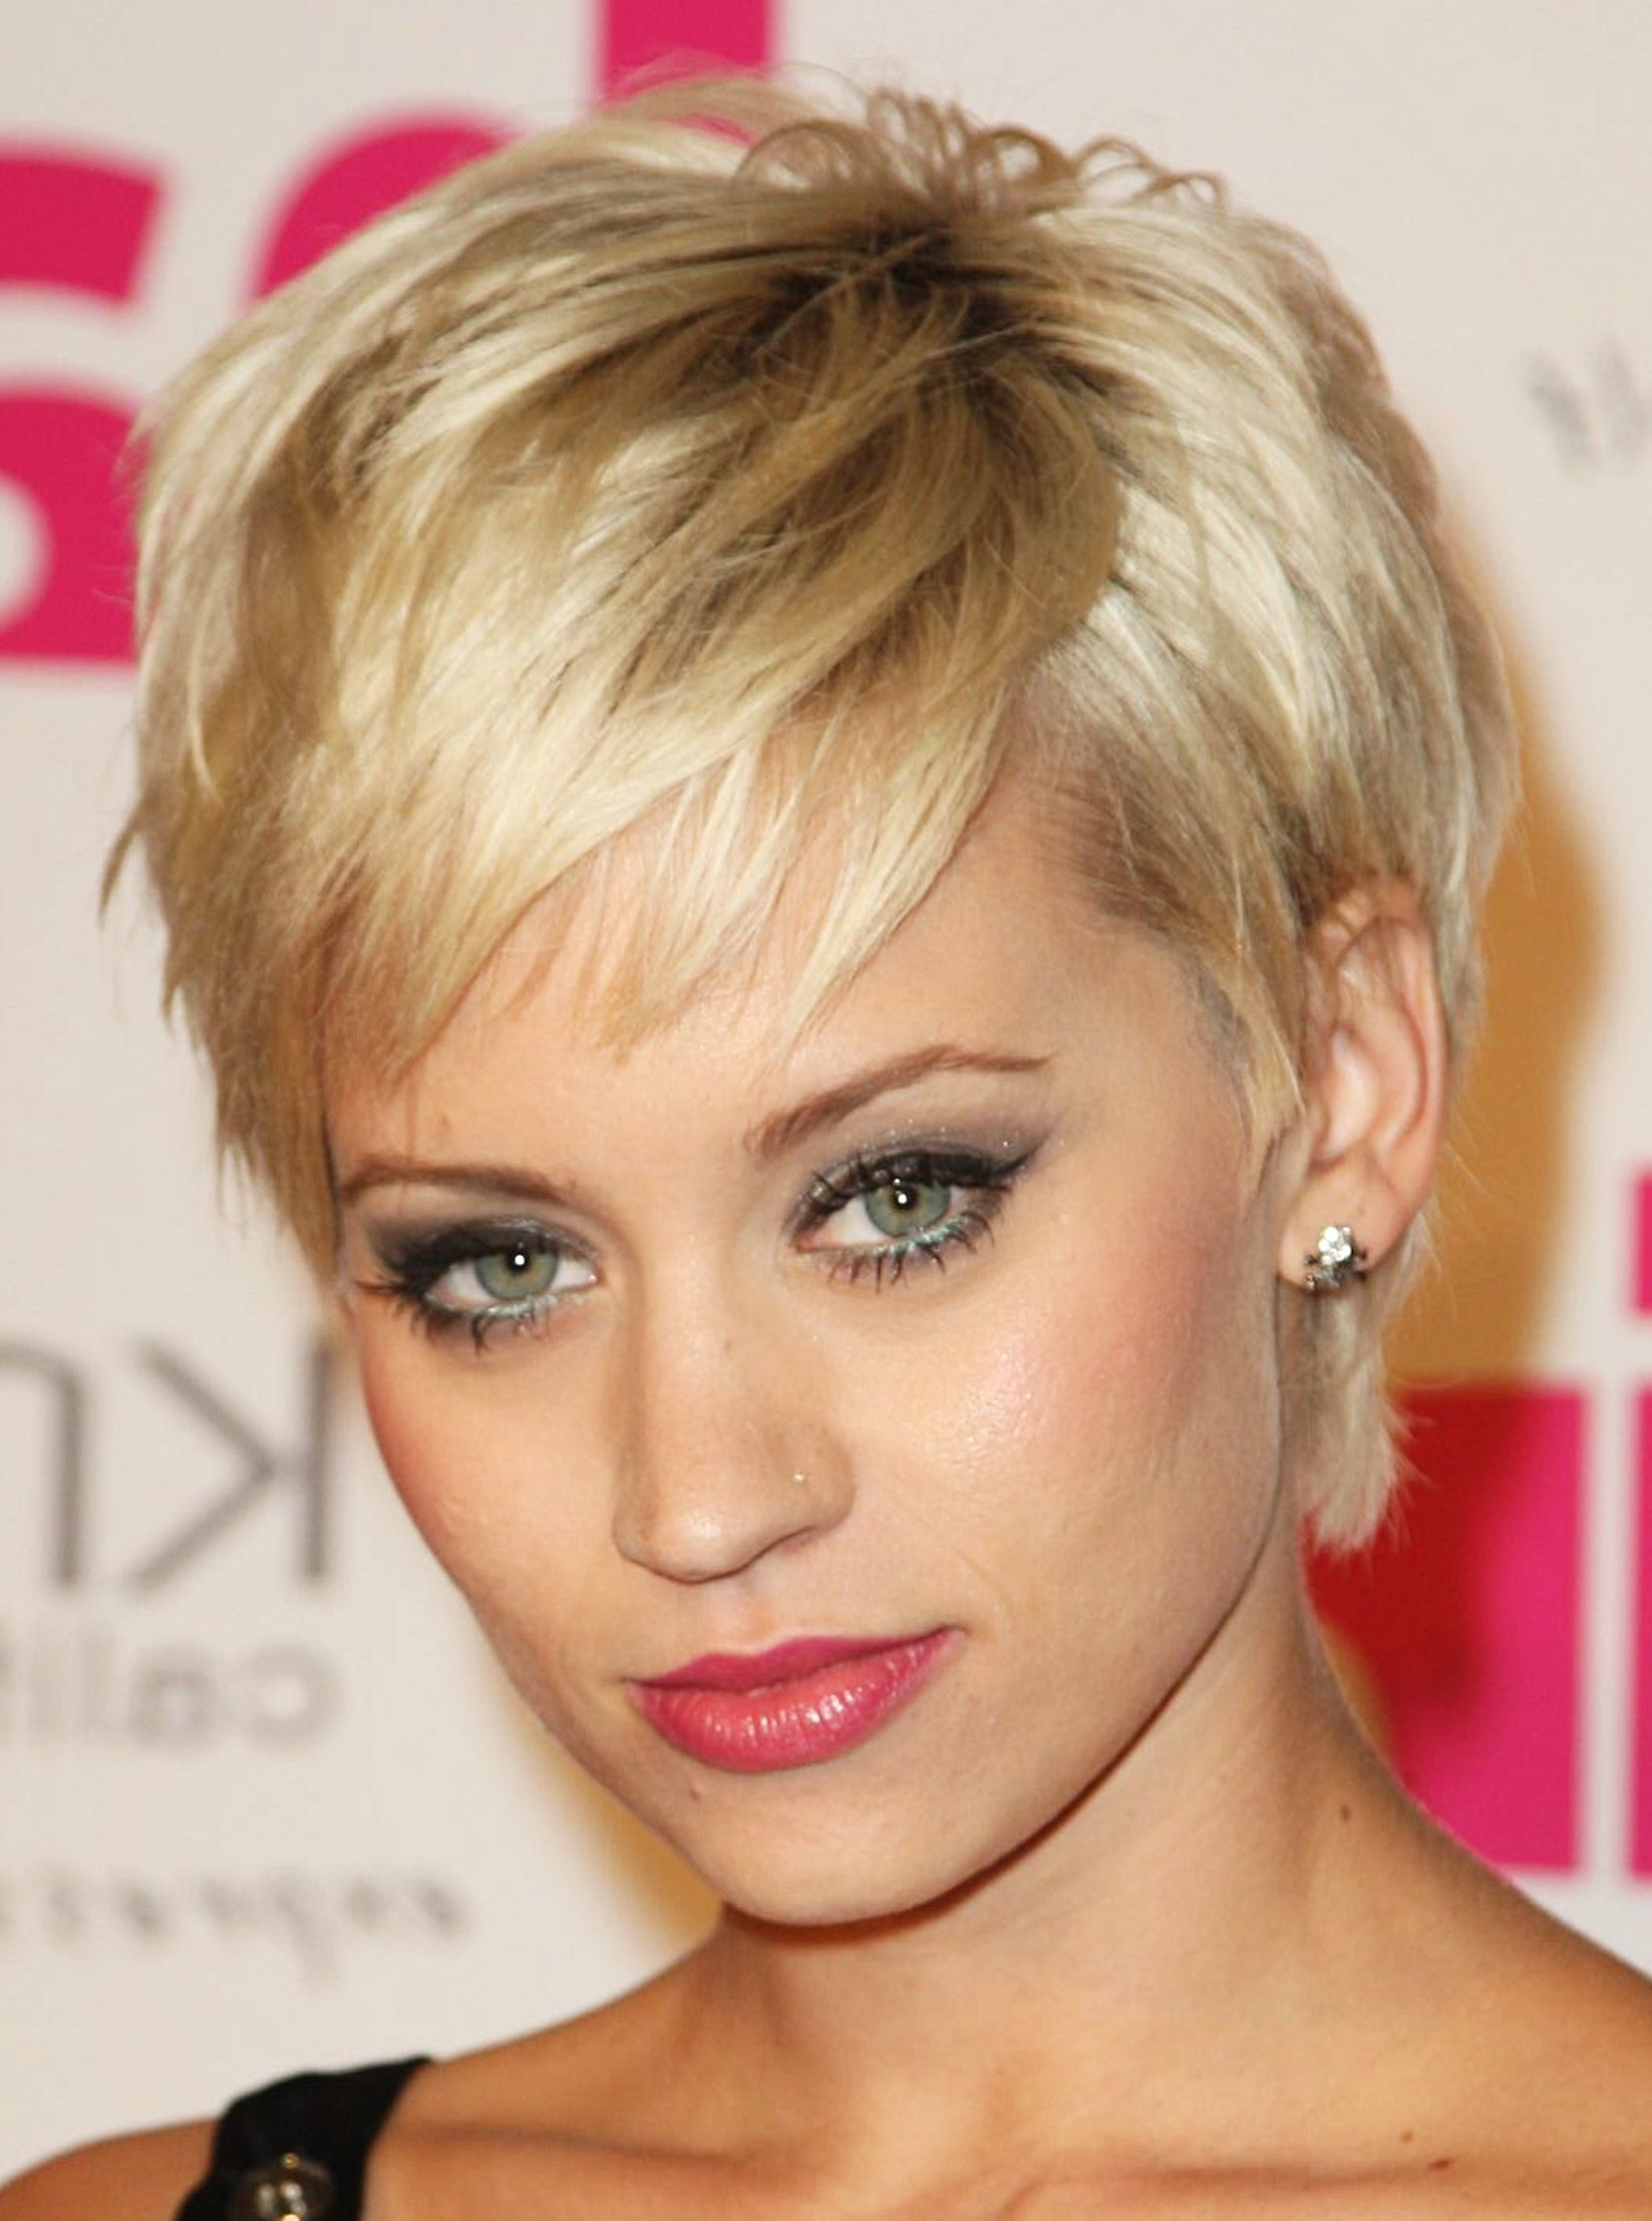 Cute Short Hair | Beauty | Pinterest | Short Hair, Shorts And Short Within Blonde Pixie Haircuts For Women 50+ (View 14 of 20)